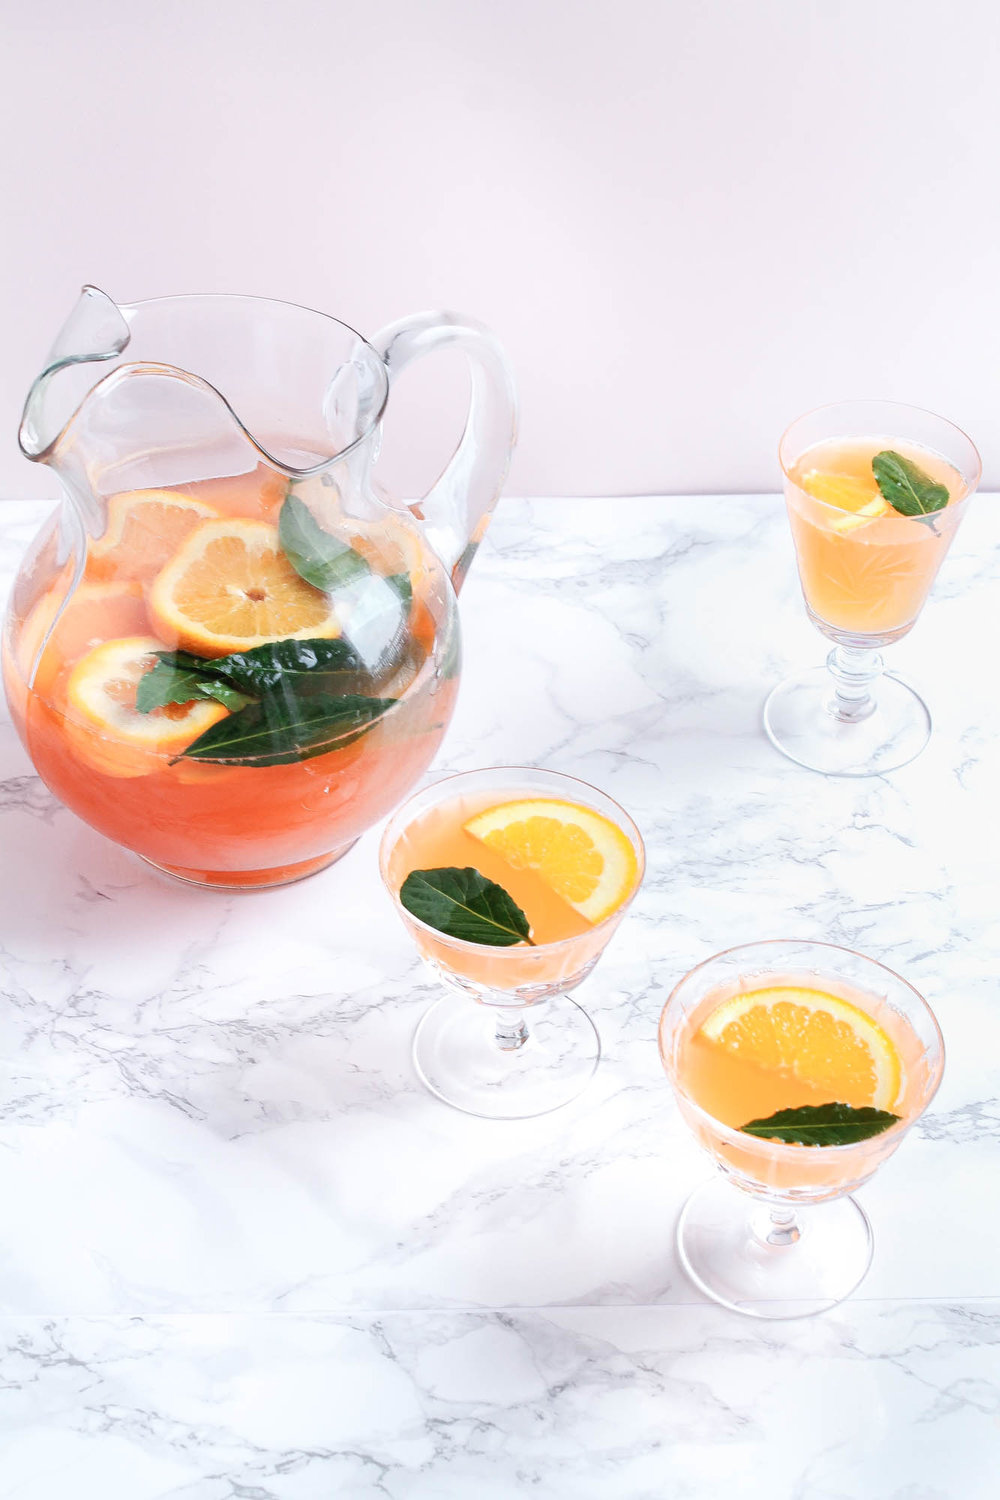 Amaro Spritz Punch    A delicious Christmas punch perfect for the holidays! This batch cocktail is made with sparkling wine, aperol, amaro montenegro, orange juice and gin. Fresh and light!    creamandhoney.ca